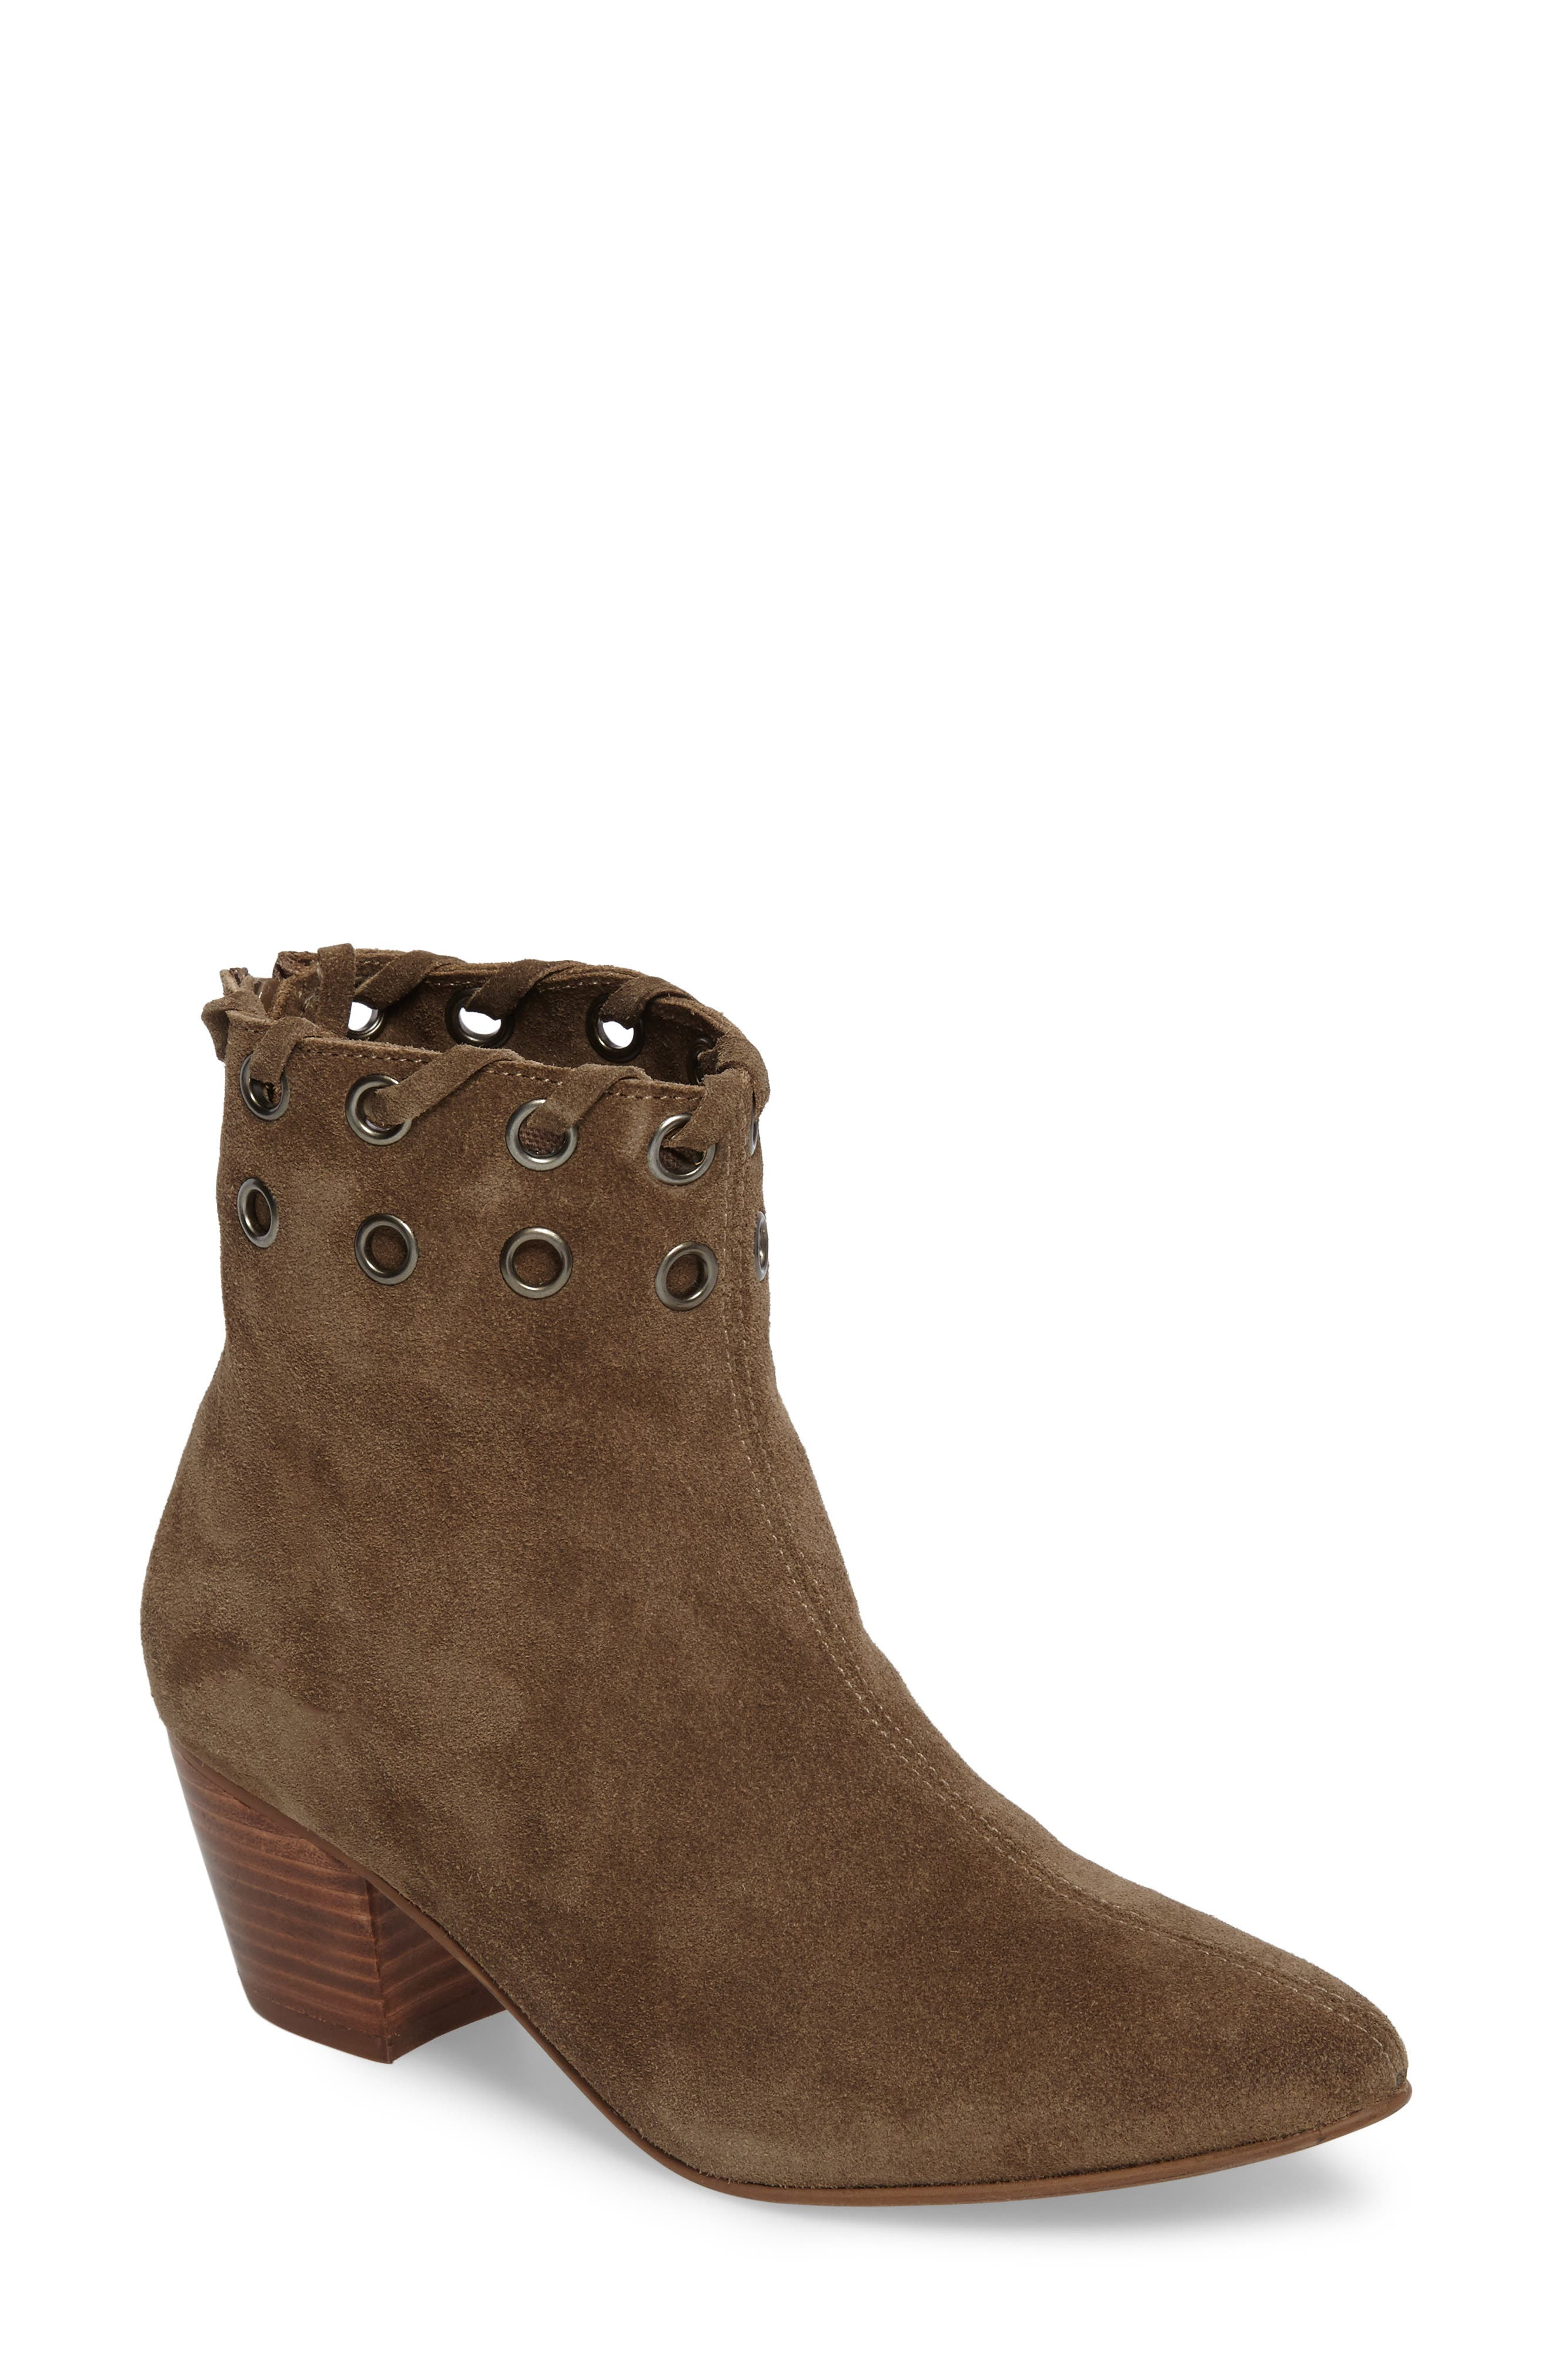 Wildcat Bootie,                             Main thumbnail 1, color,                             Taupe Suede